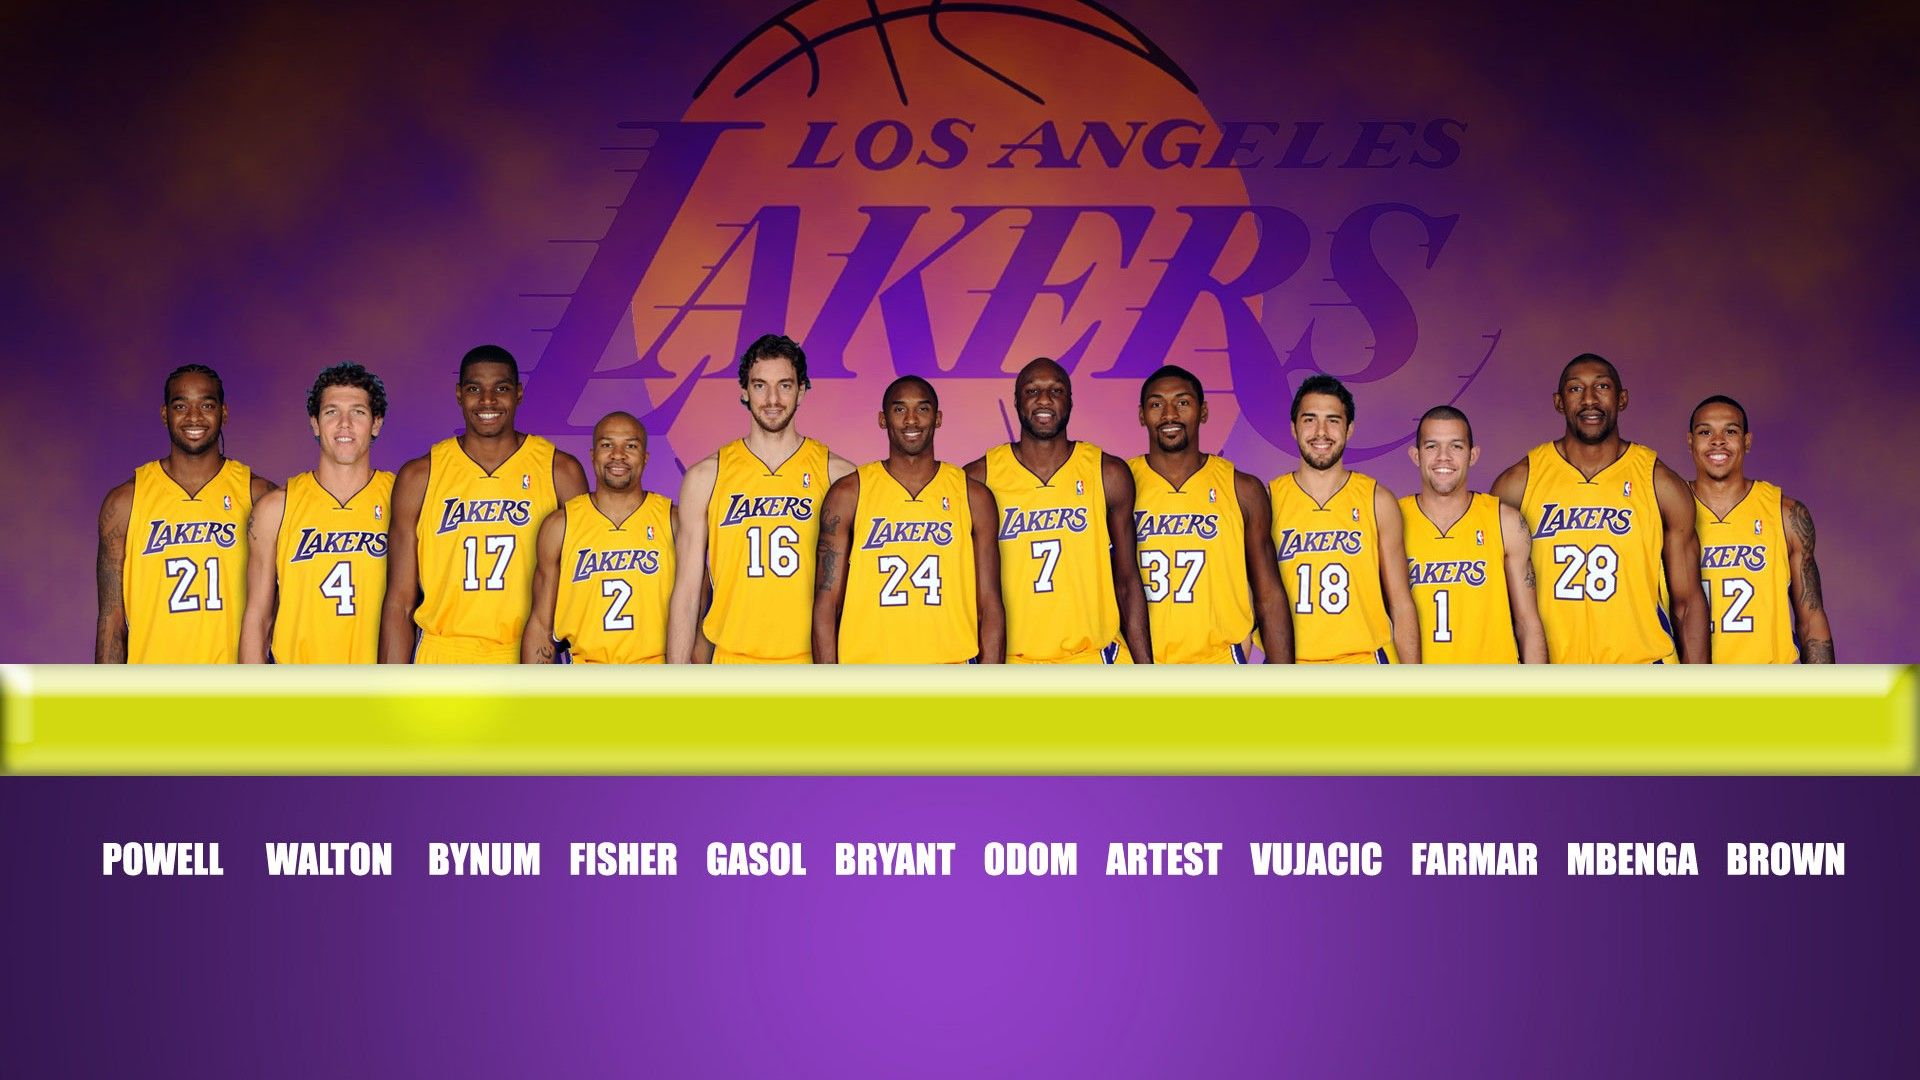 Los Angeles Lakers For Mac Wallpaper In 2020 Los Angeles Lakers Team Wallpaper Lakers Wallpaper